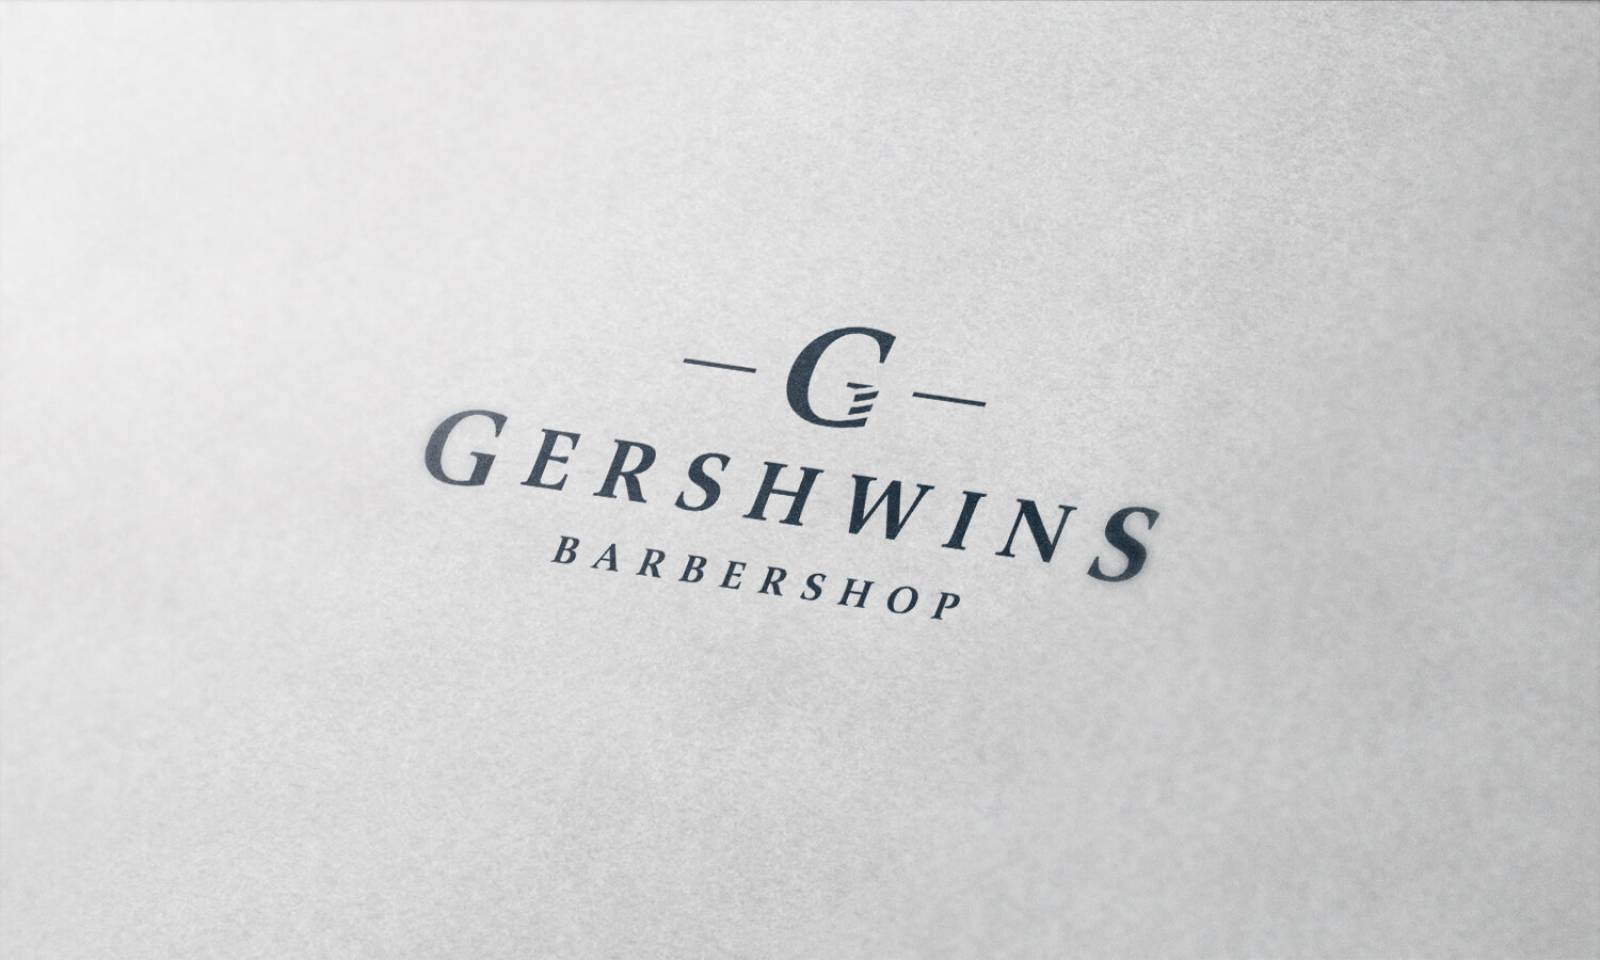 Gershwins-logo-2-design-agency-graphic-design-canterbury.jpg